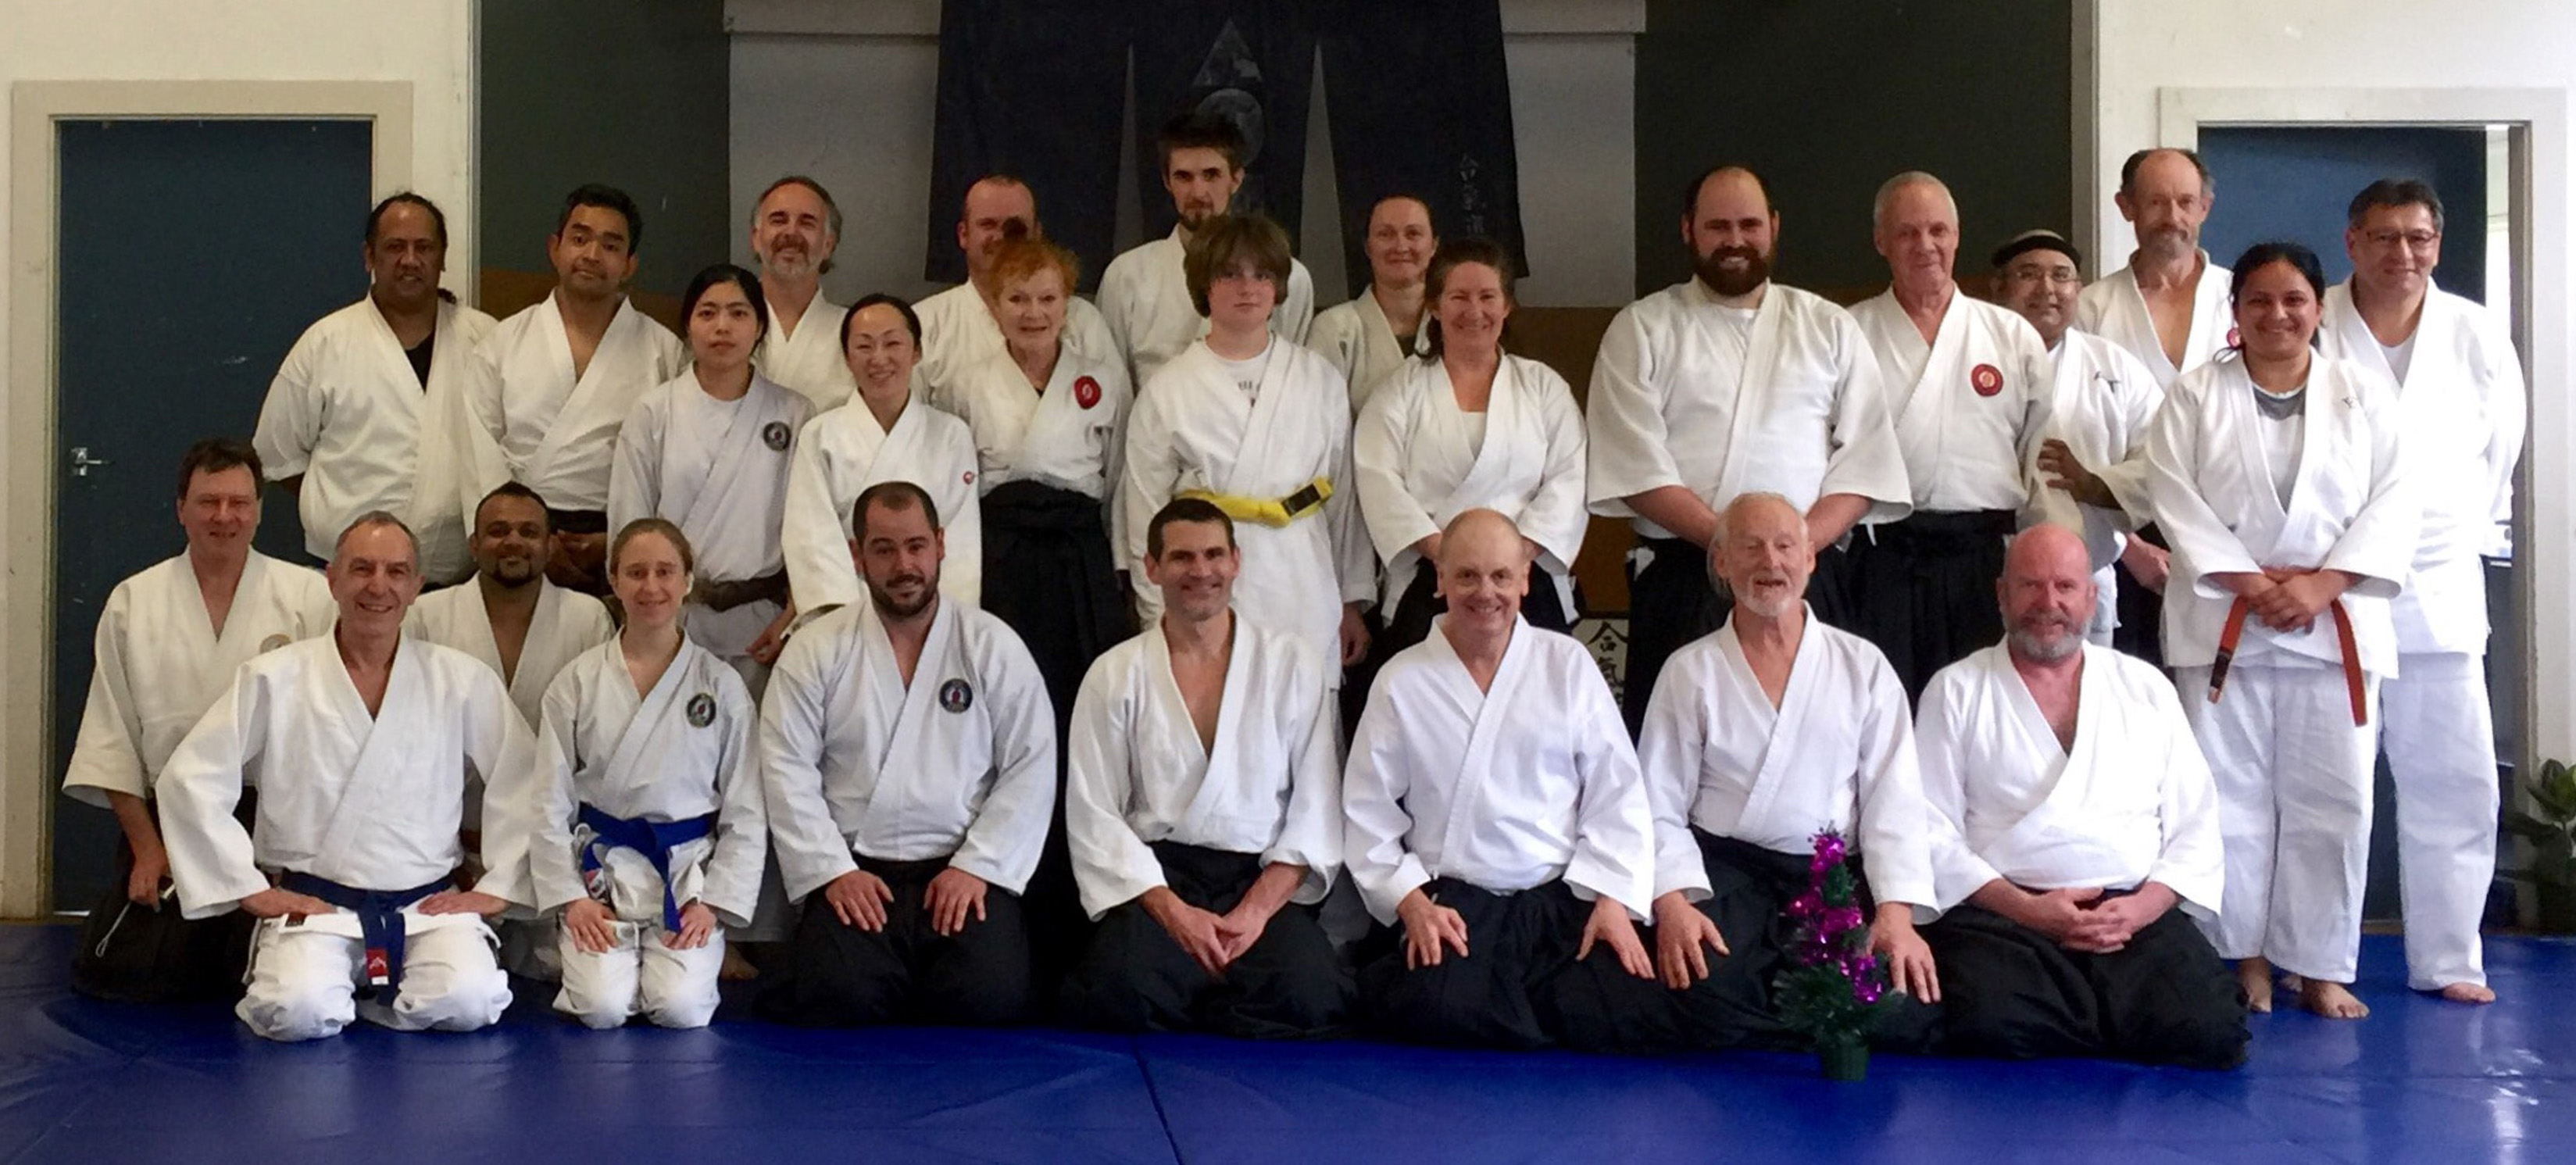 Belmont Seminar Dec 2015 cropped